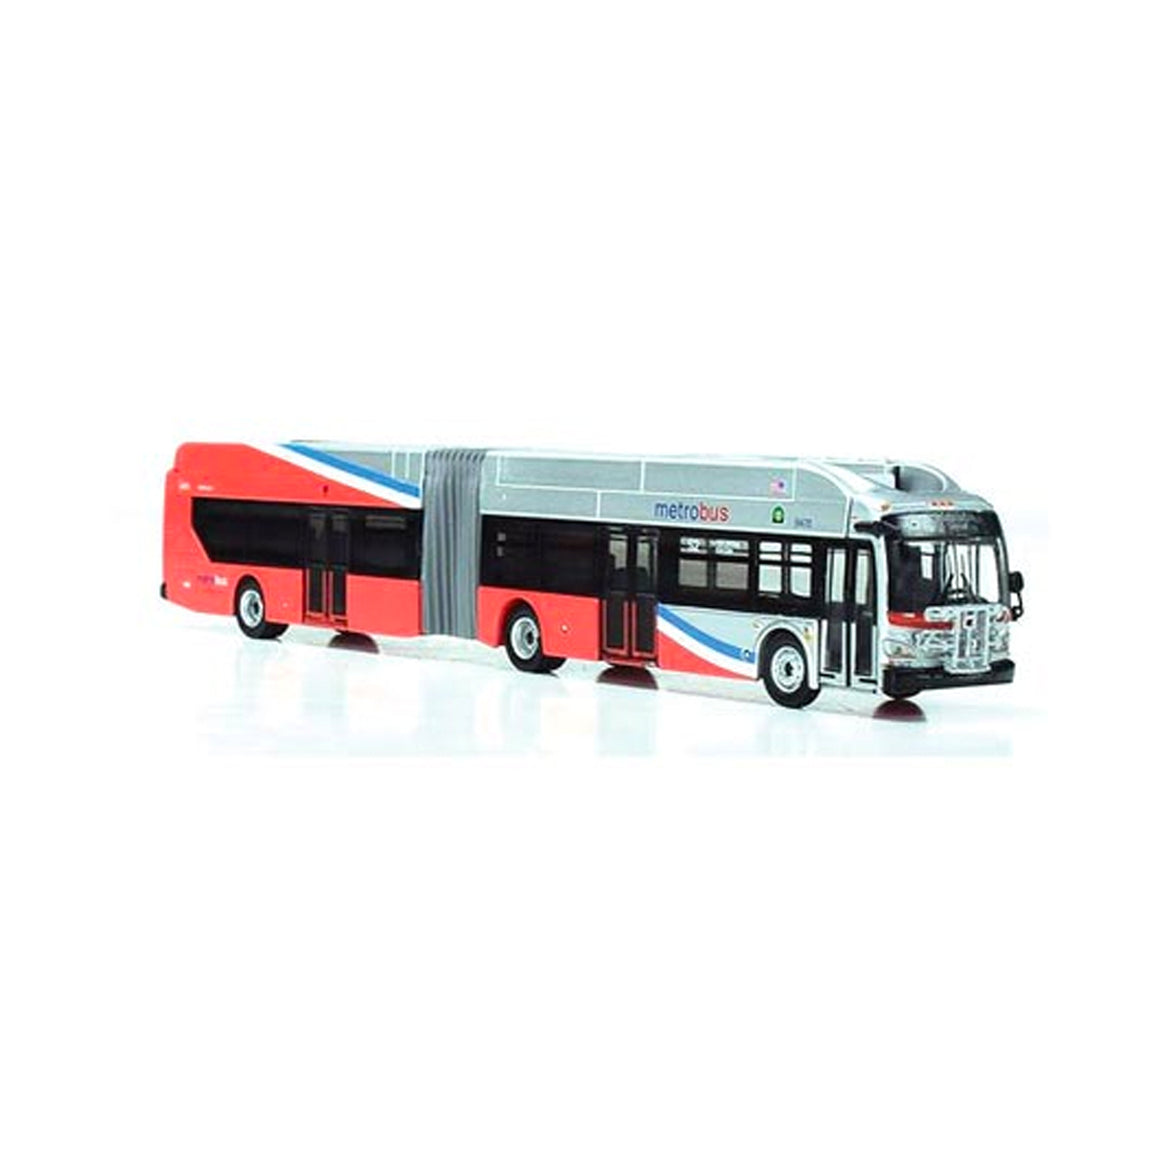 HO Scale: New Flyer Excelsior Articulated Bus - Metro Washington 'Silver Springs Station'